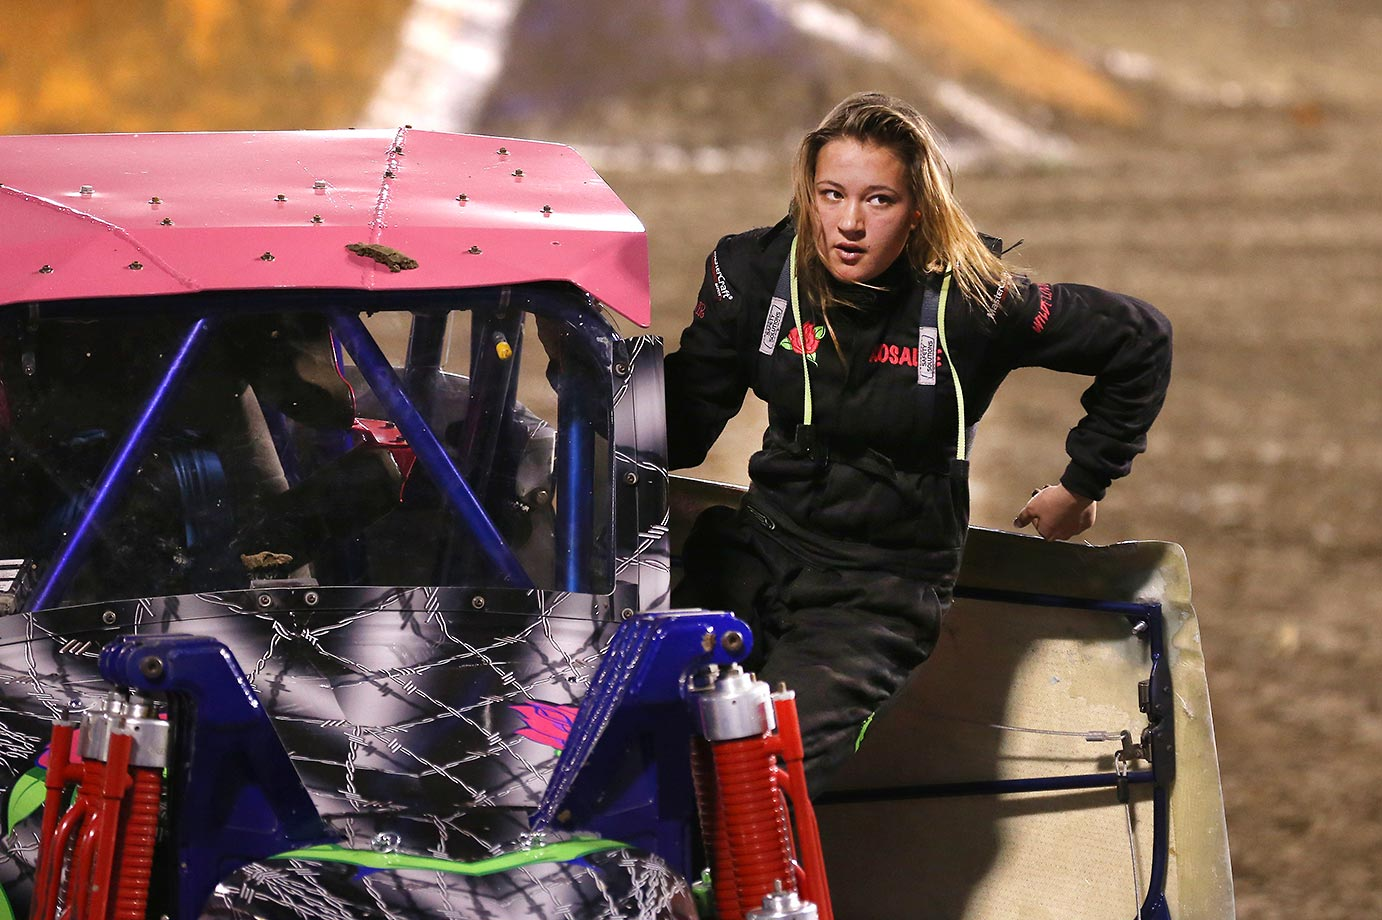 Monster Truck's youngest female driver, 18-year-old Rosalee Ramer, climbs out of her 'Wild Flower' Monster Truck during a break in the competition.